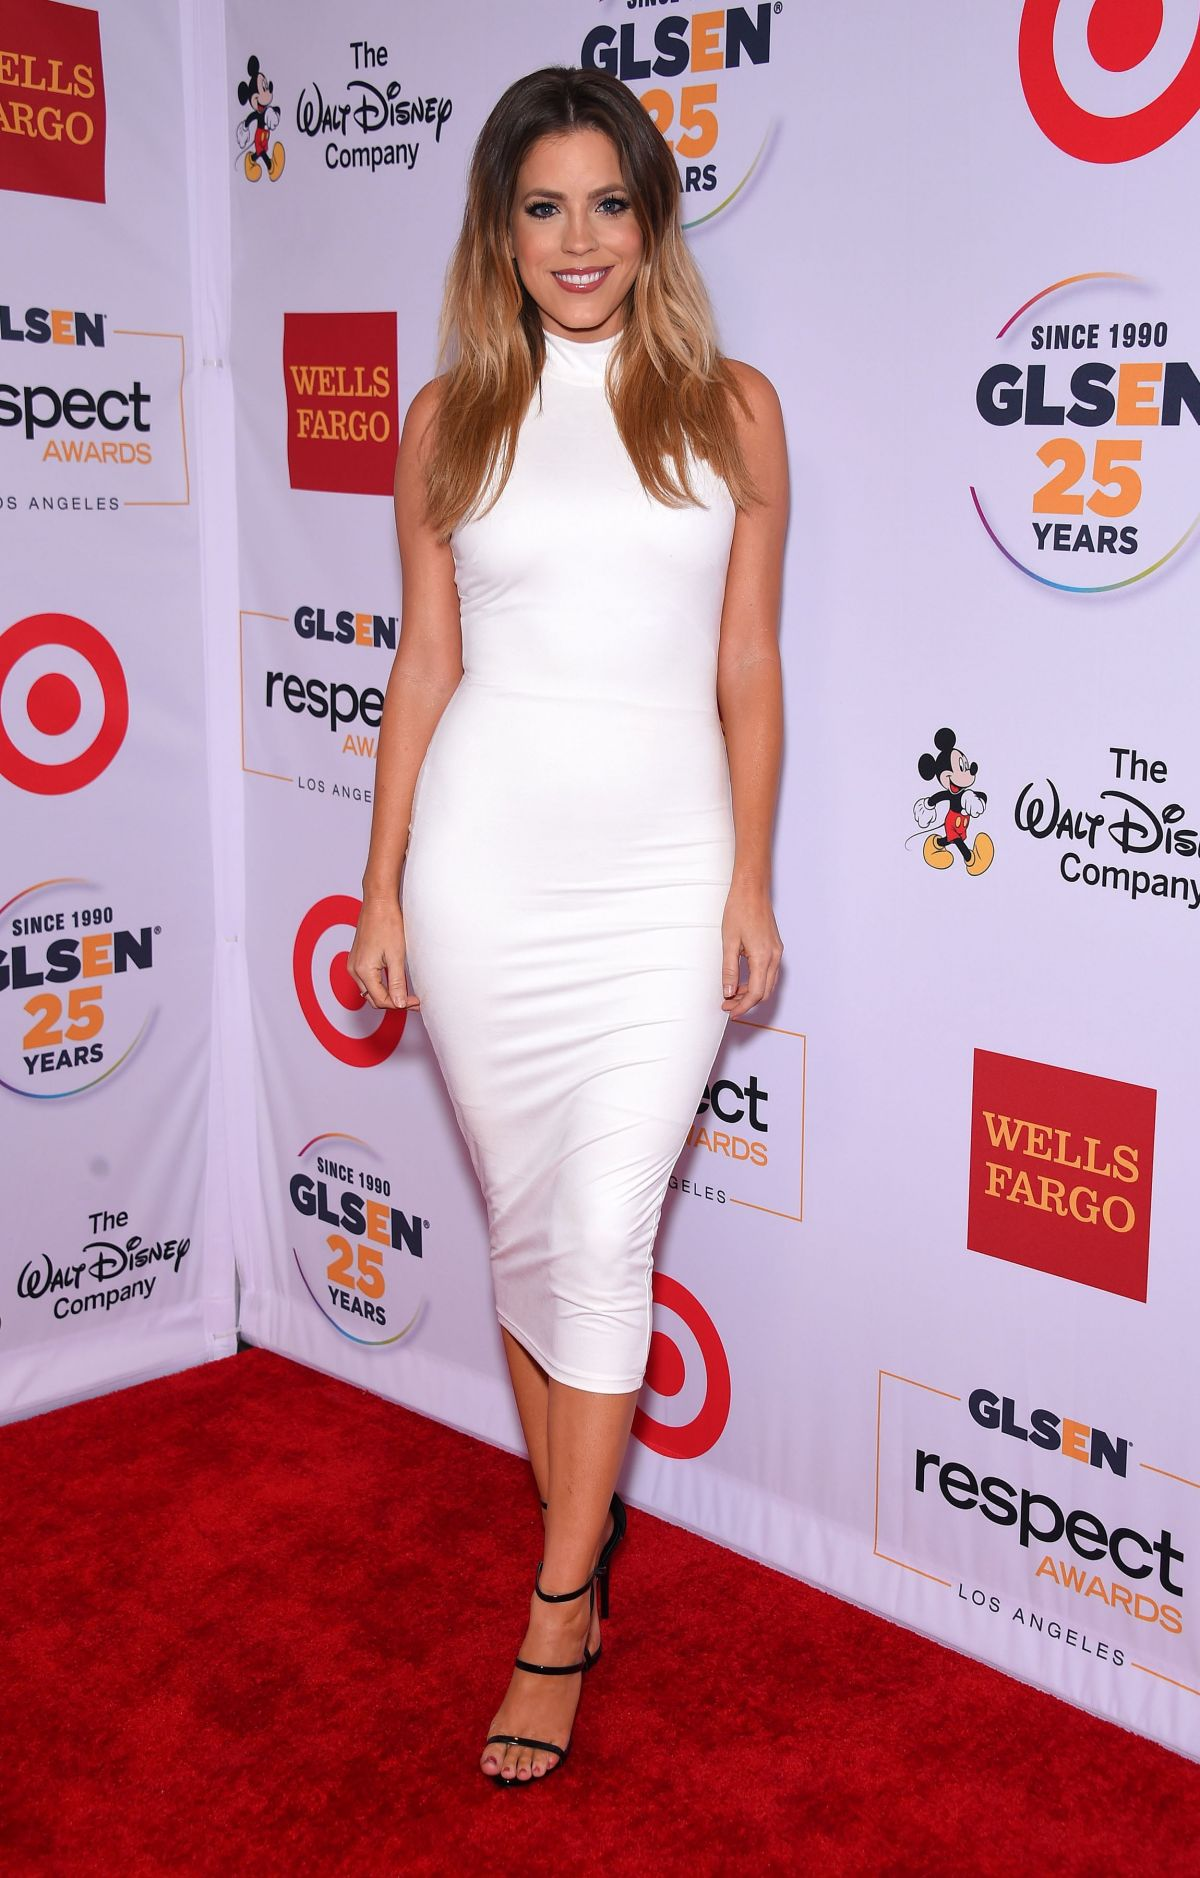 STEPHANIE BAUER at 2015 glsen Respect Awards in Beverly Hills 10/23/2015